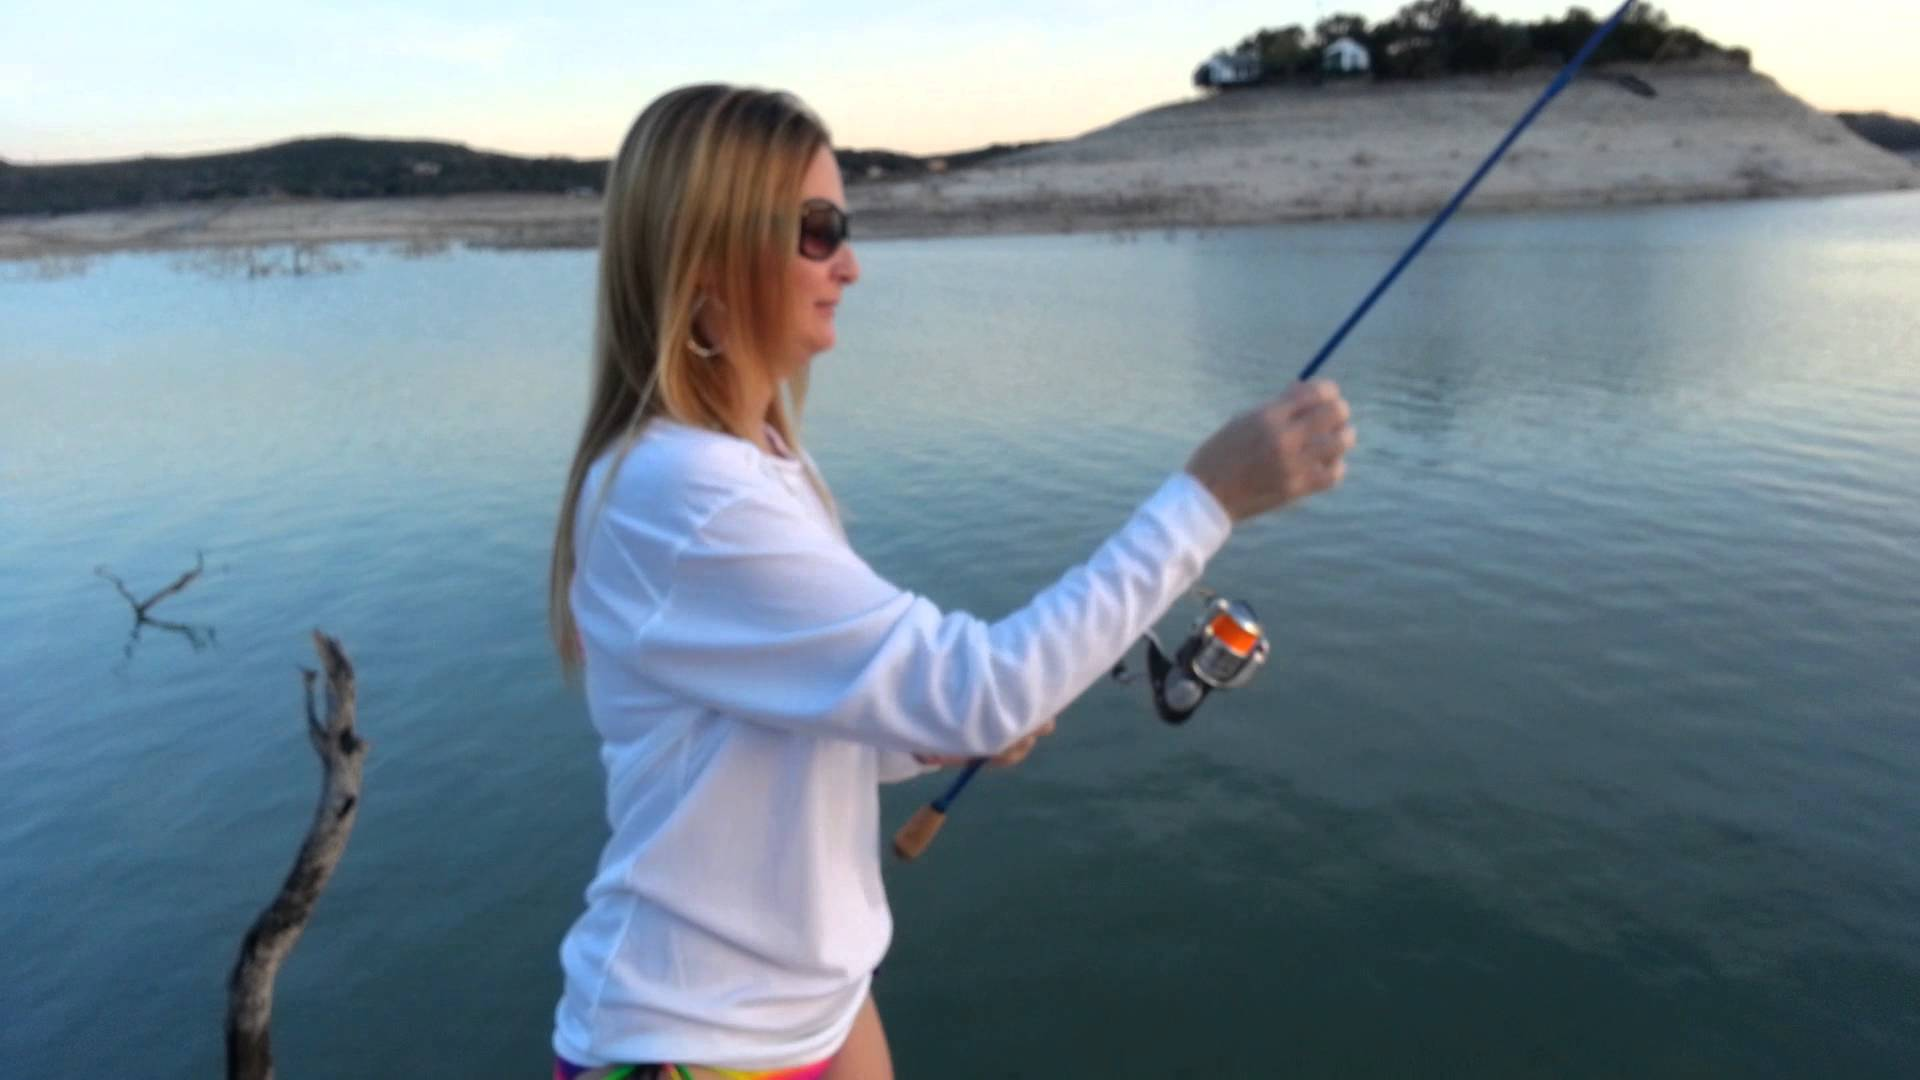 Minturn anglers fly fishing vail cow girl fly fishing for Fly fishing shop near me